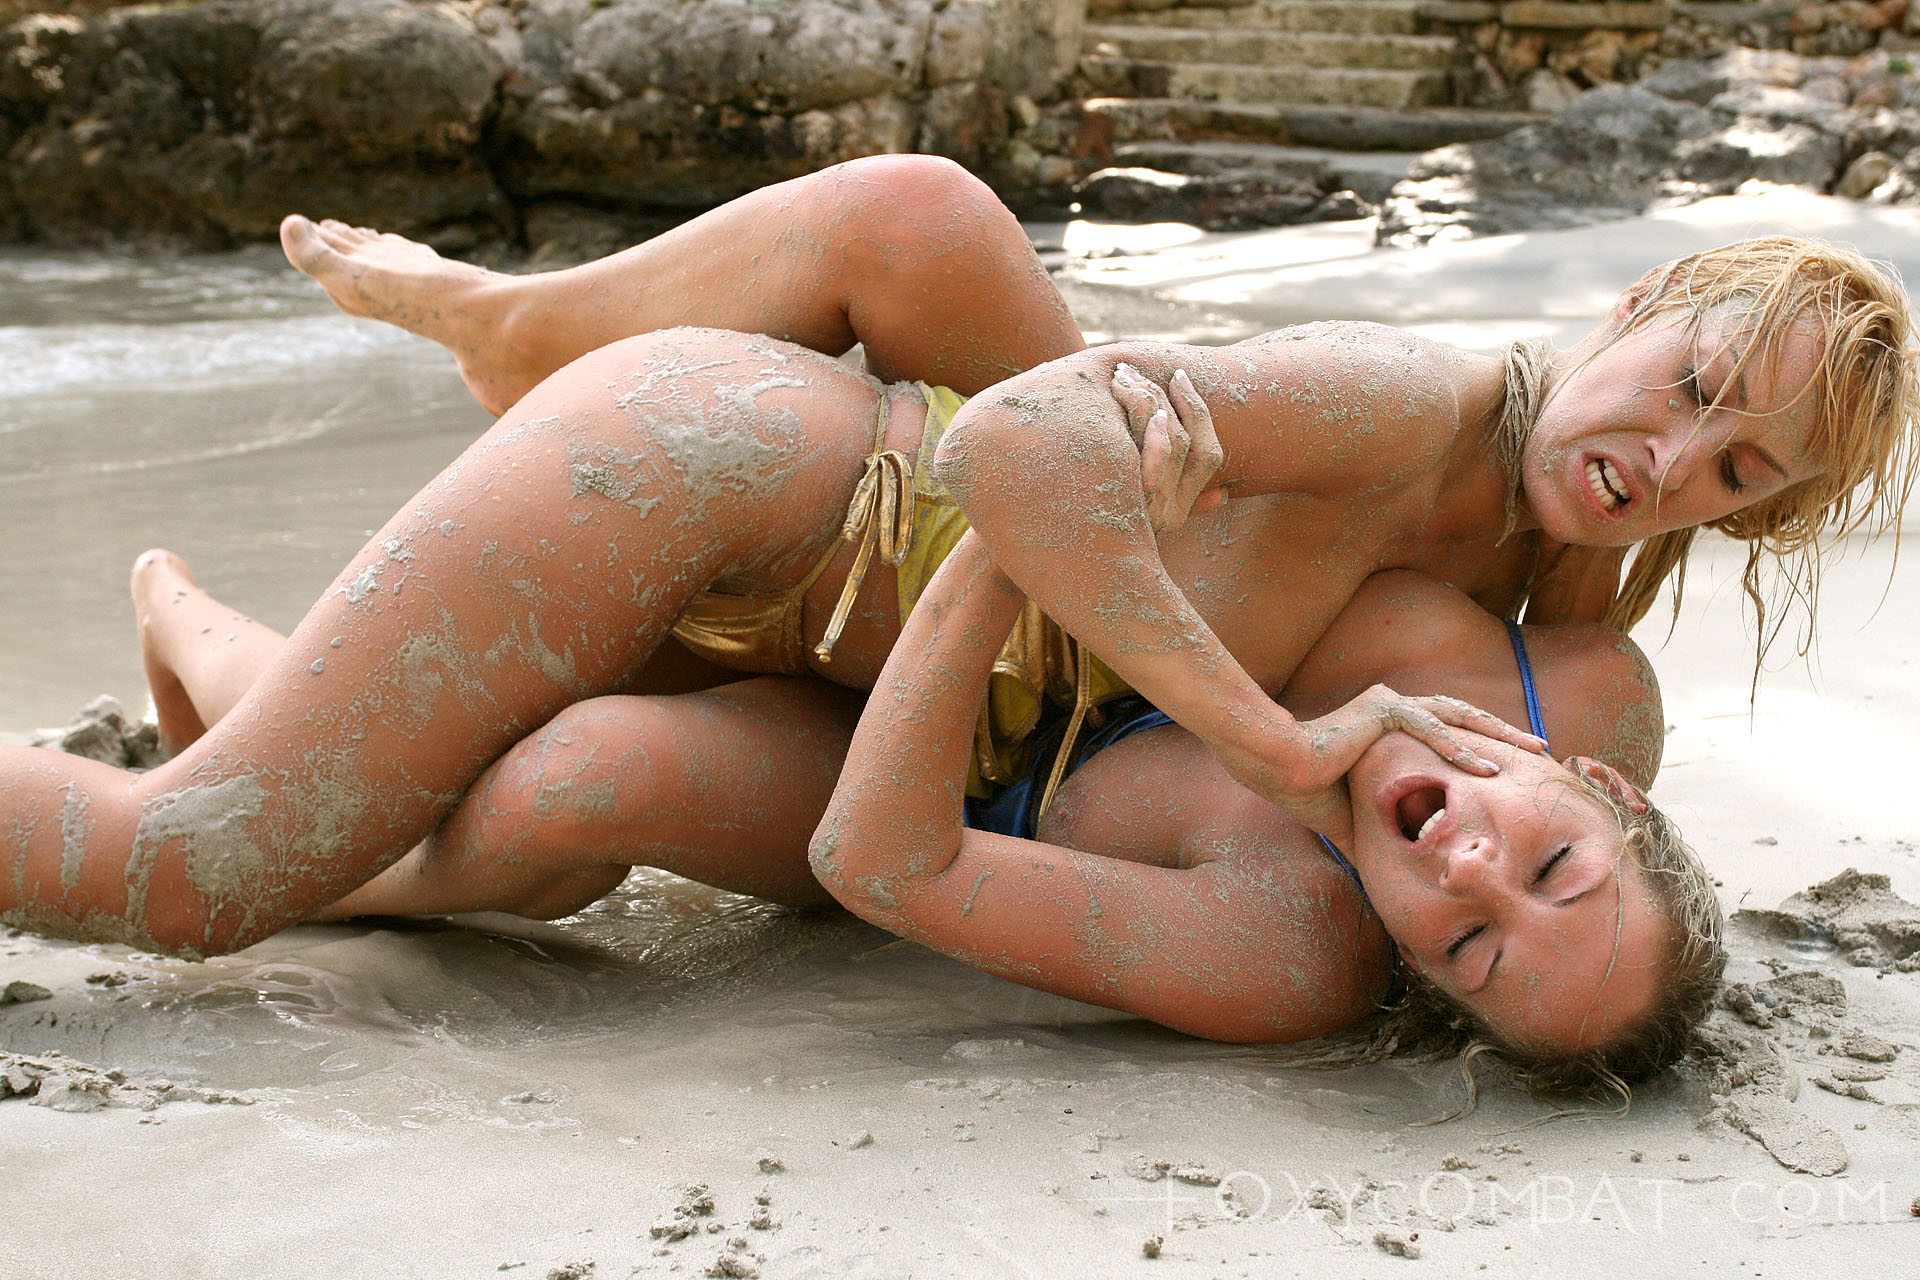 Hot girls wrestling at beach